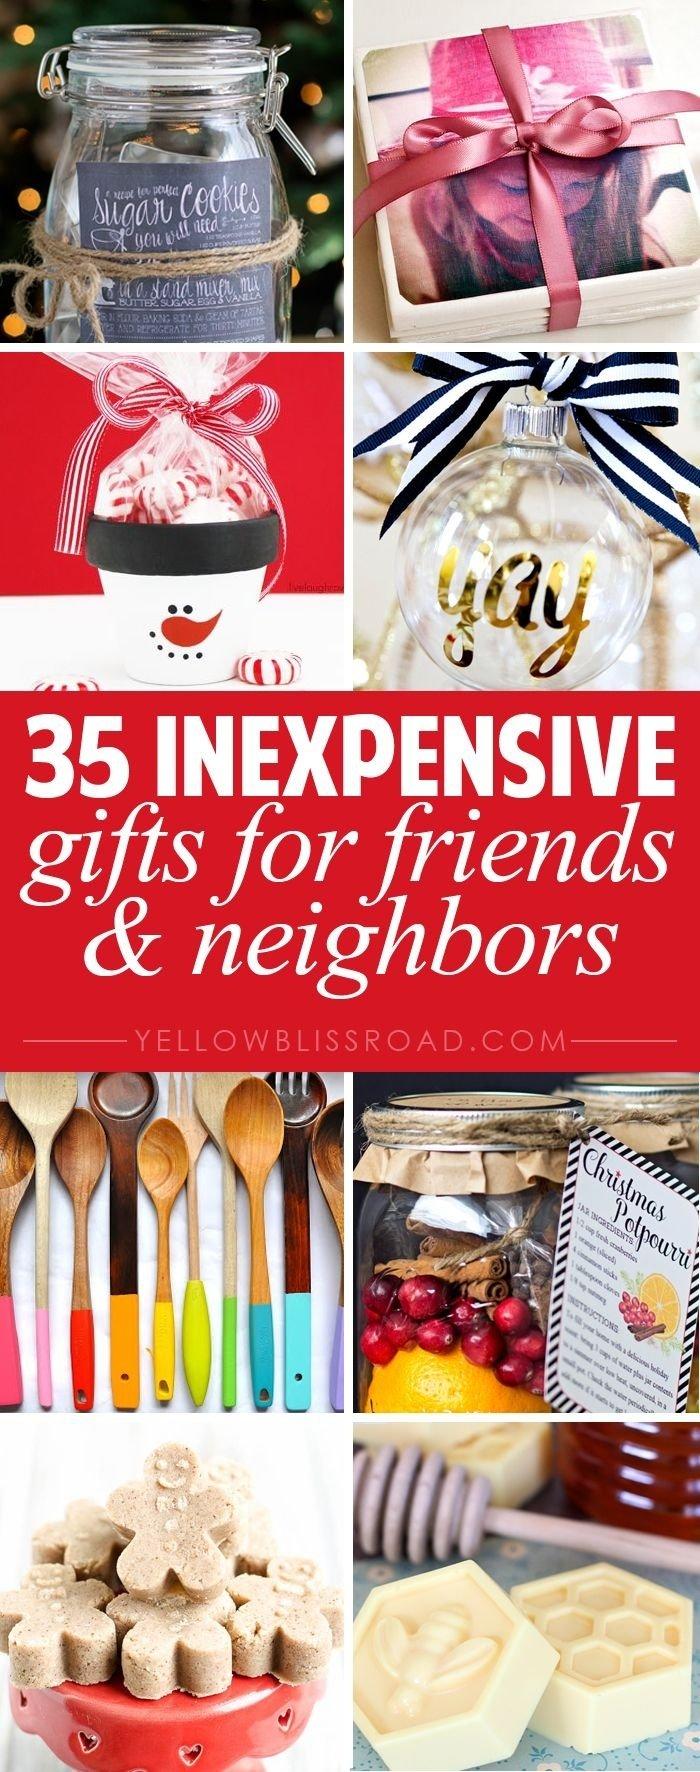 10 Unique Low Cost Christmas Gift Ideas 1524 best gift ideas images on pinterest creative gifts gift